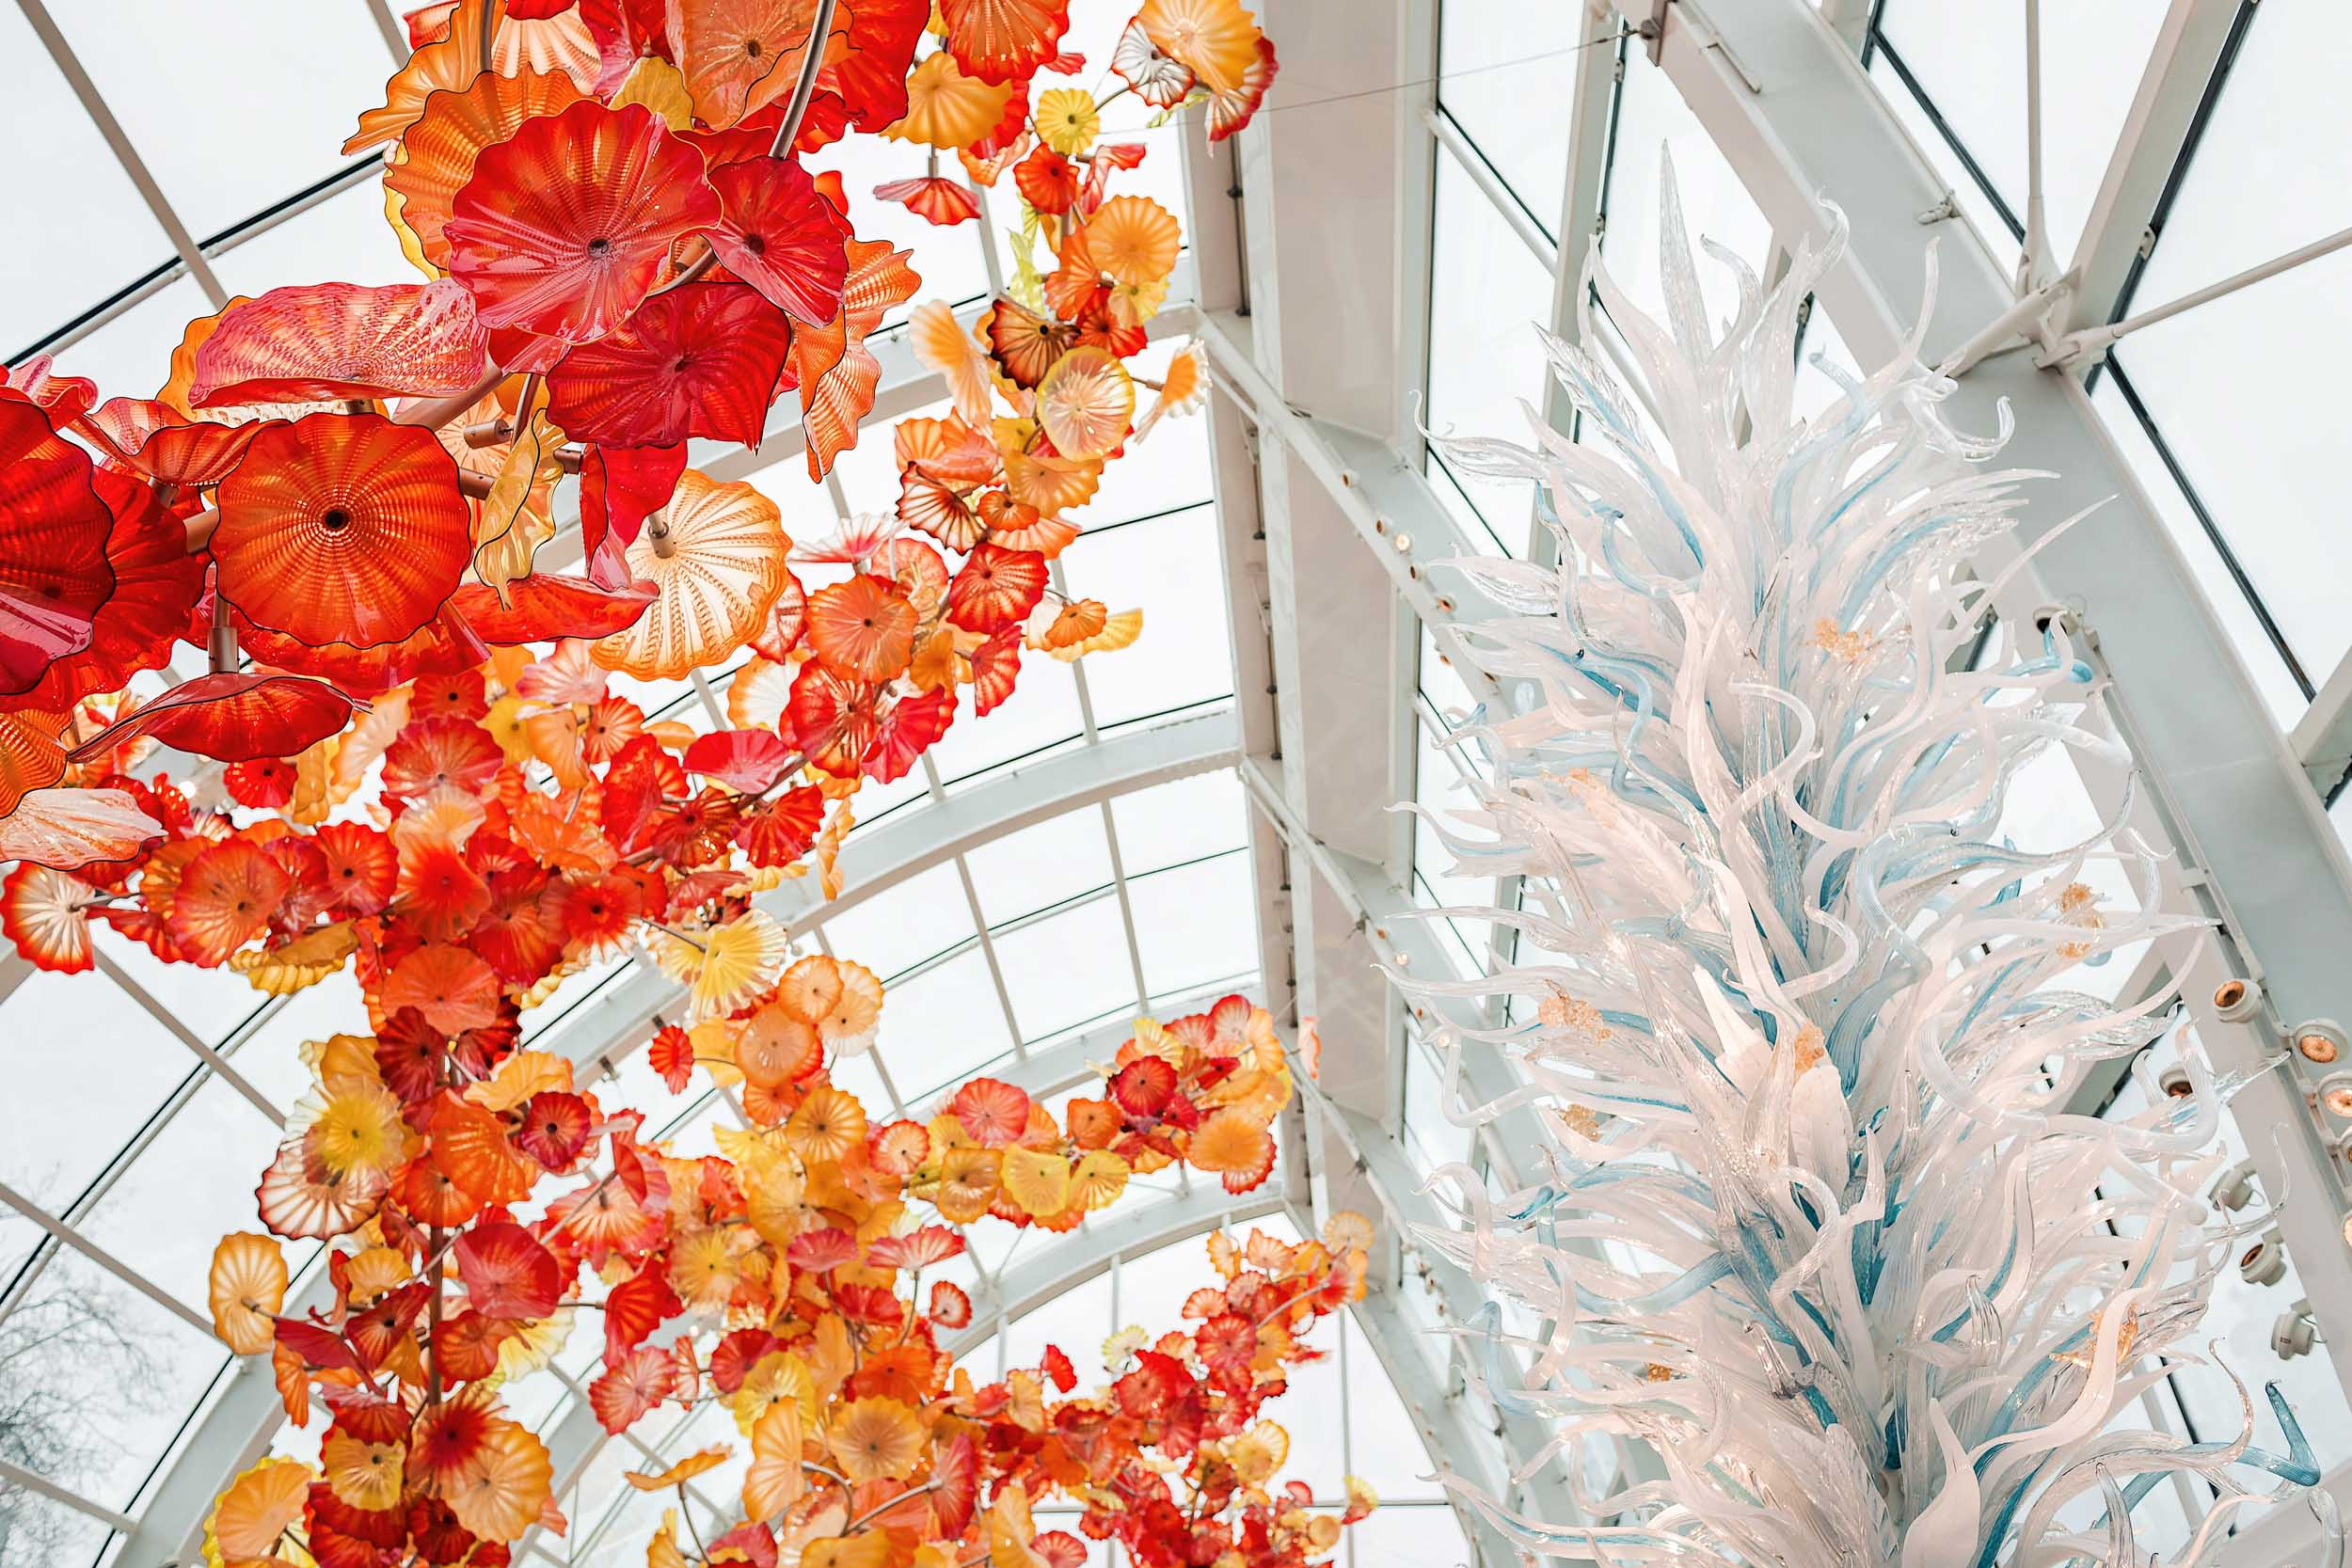 The glasshouse at Chihuly Garden and Glass in Seattle